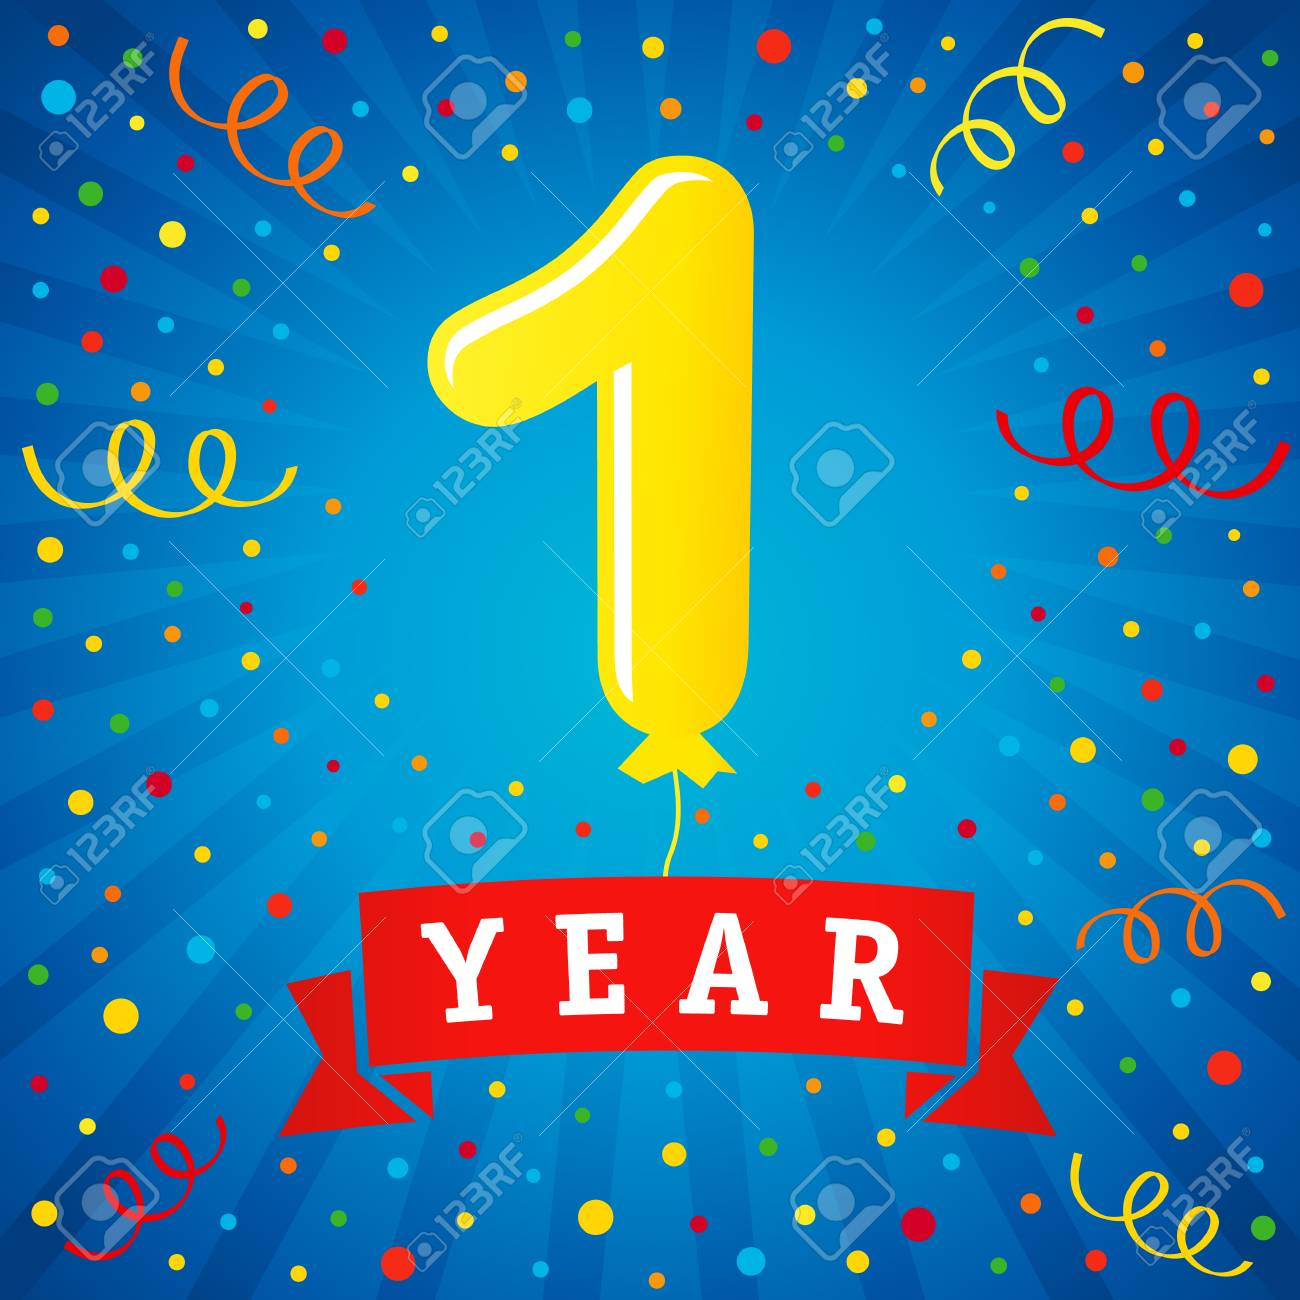 1 Year Anniversary Celebration With Colored Balloon Confetti Royalty Free Cliparts Vectors And Stock Illustration Image 93464265